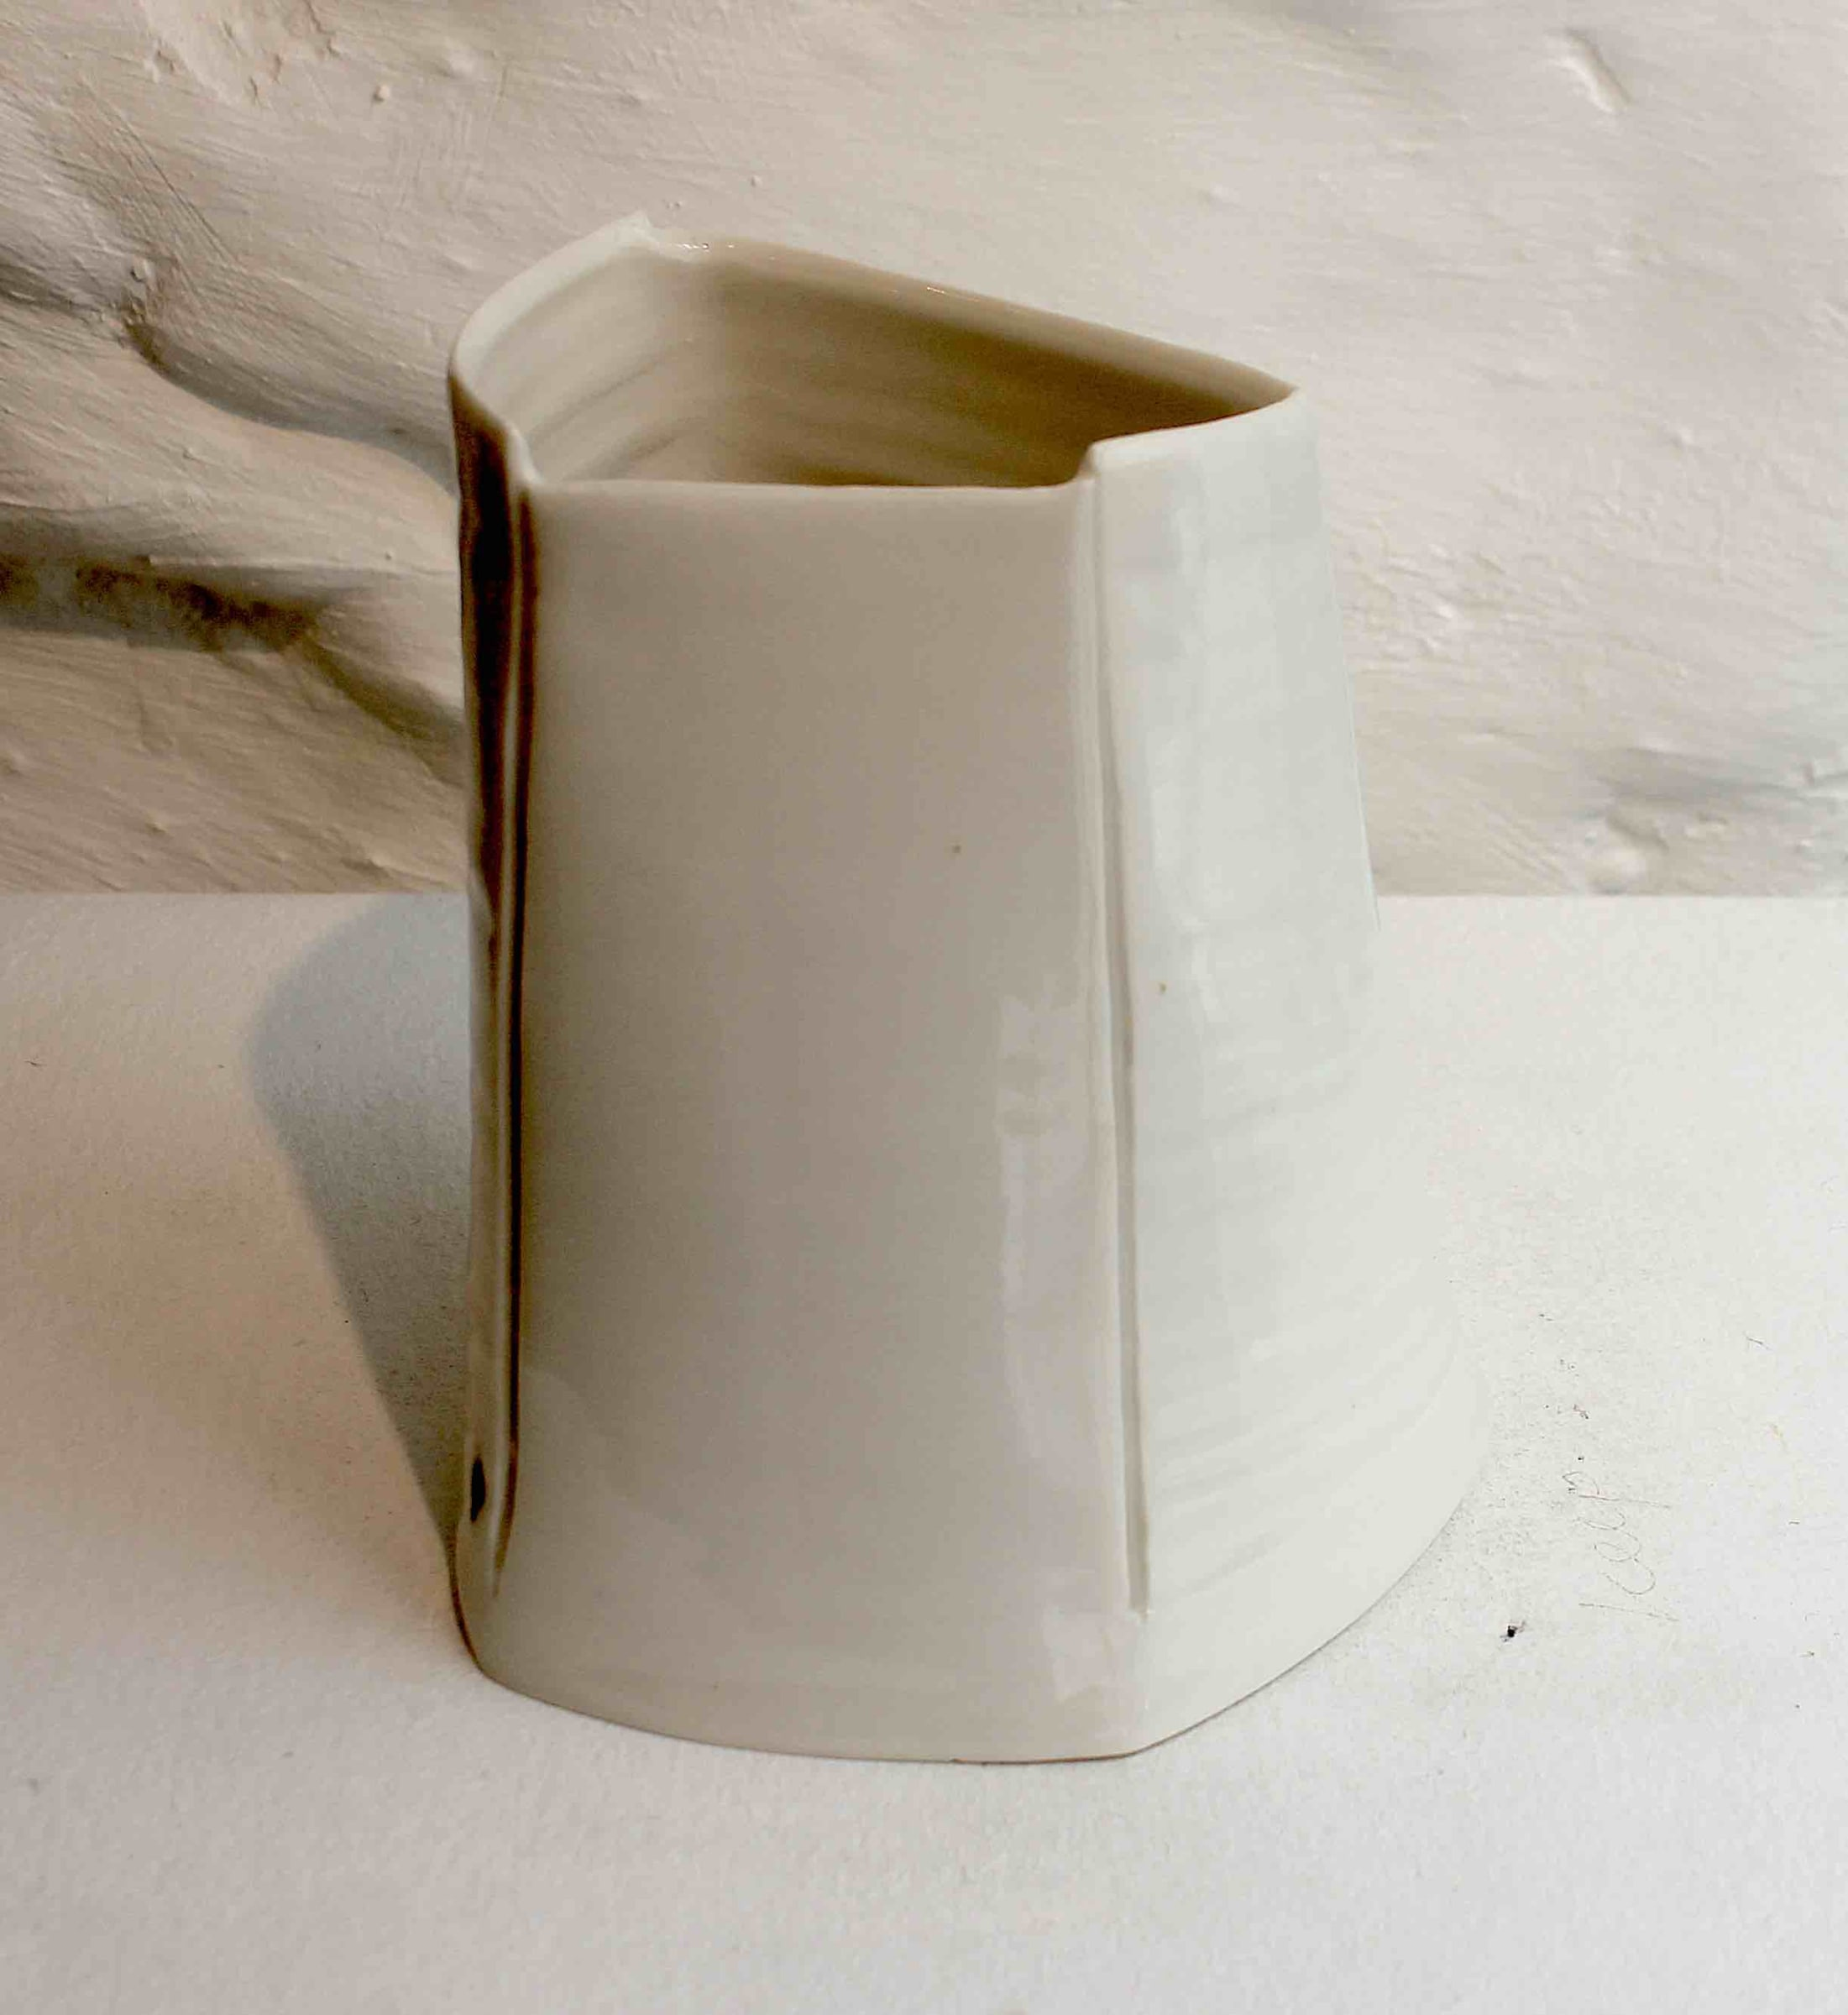 """<span class=""""link fancybox-details-link""""><a href=""""/artists/99-carina-ciscato/works/5763-carina-ciscato-small-white-vase-2018/"""">View Detail Page</a></span><div class=""""artist""""><strong>Carina Ciscato</strong></div> b. 1970 <div class=""""title""""><em>Small White Vase</em>, 2018</div> <div class=""""signed_and_dated"""">porcelain</div> <div class=""""medium"""">porcelain</div> <div class=""""dimensions"""">12 x 8 cm<br /> 4 3/4 x 3 1/8 inches</div><div class=""""price"""">£420.00</div><div class=""""copyright_line"""">OwnArt: £42 x 10 Months, 0% APR</div>"""